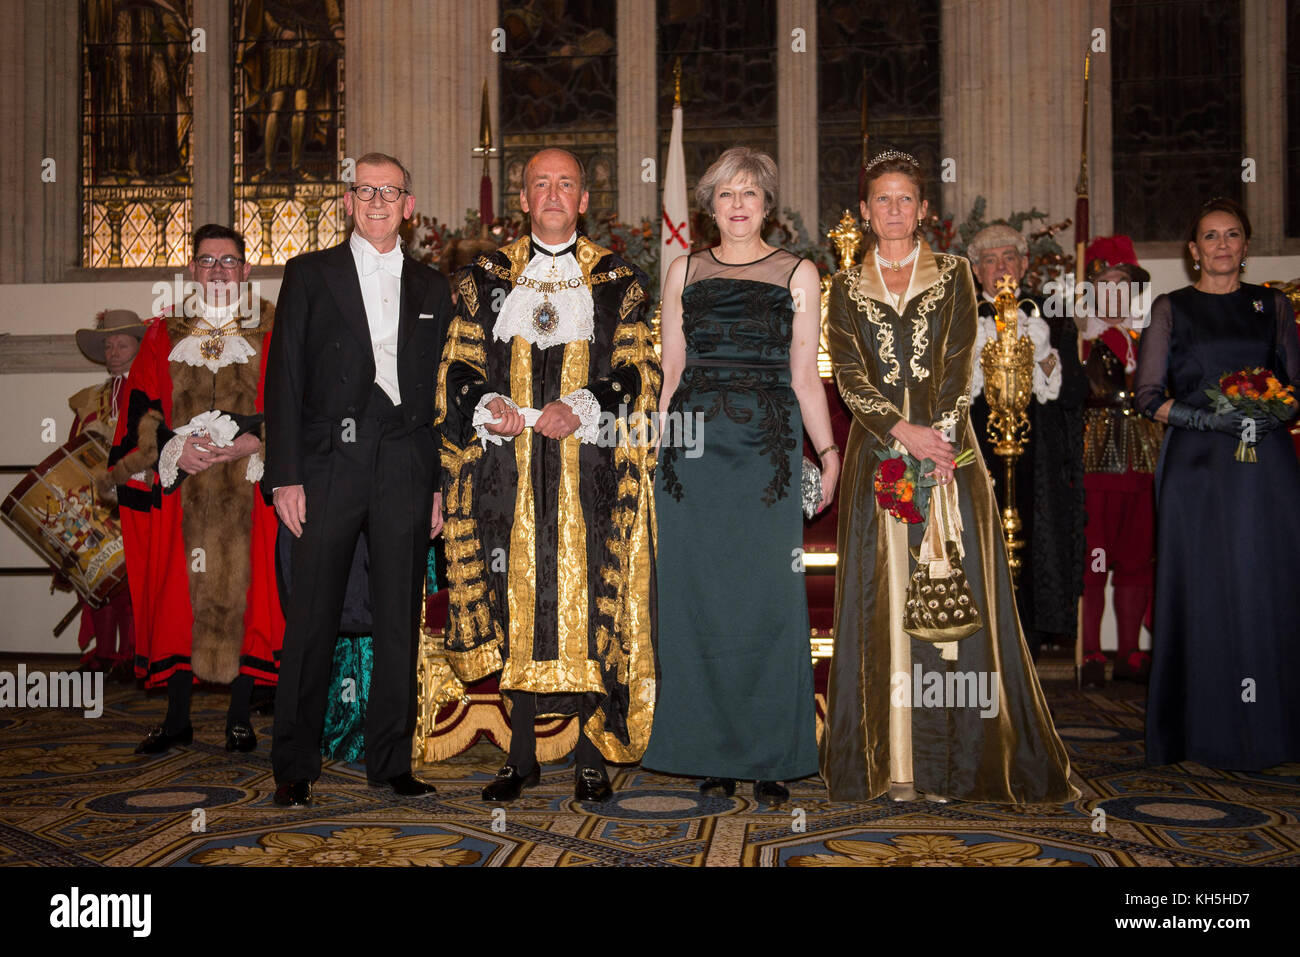 Prime Minister Theresa May and her husband Philip with new Lord Mayor of London Charles Bowman and wife Samantha - Stock Image